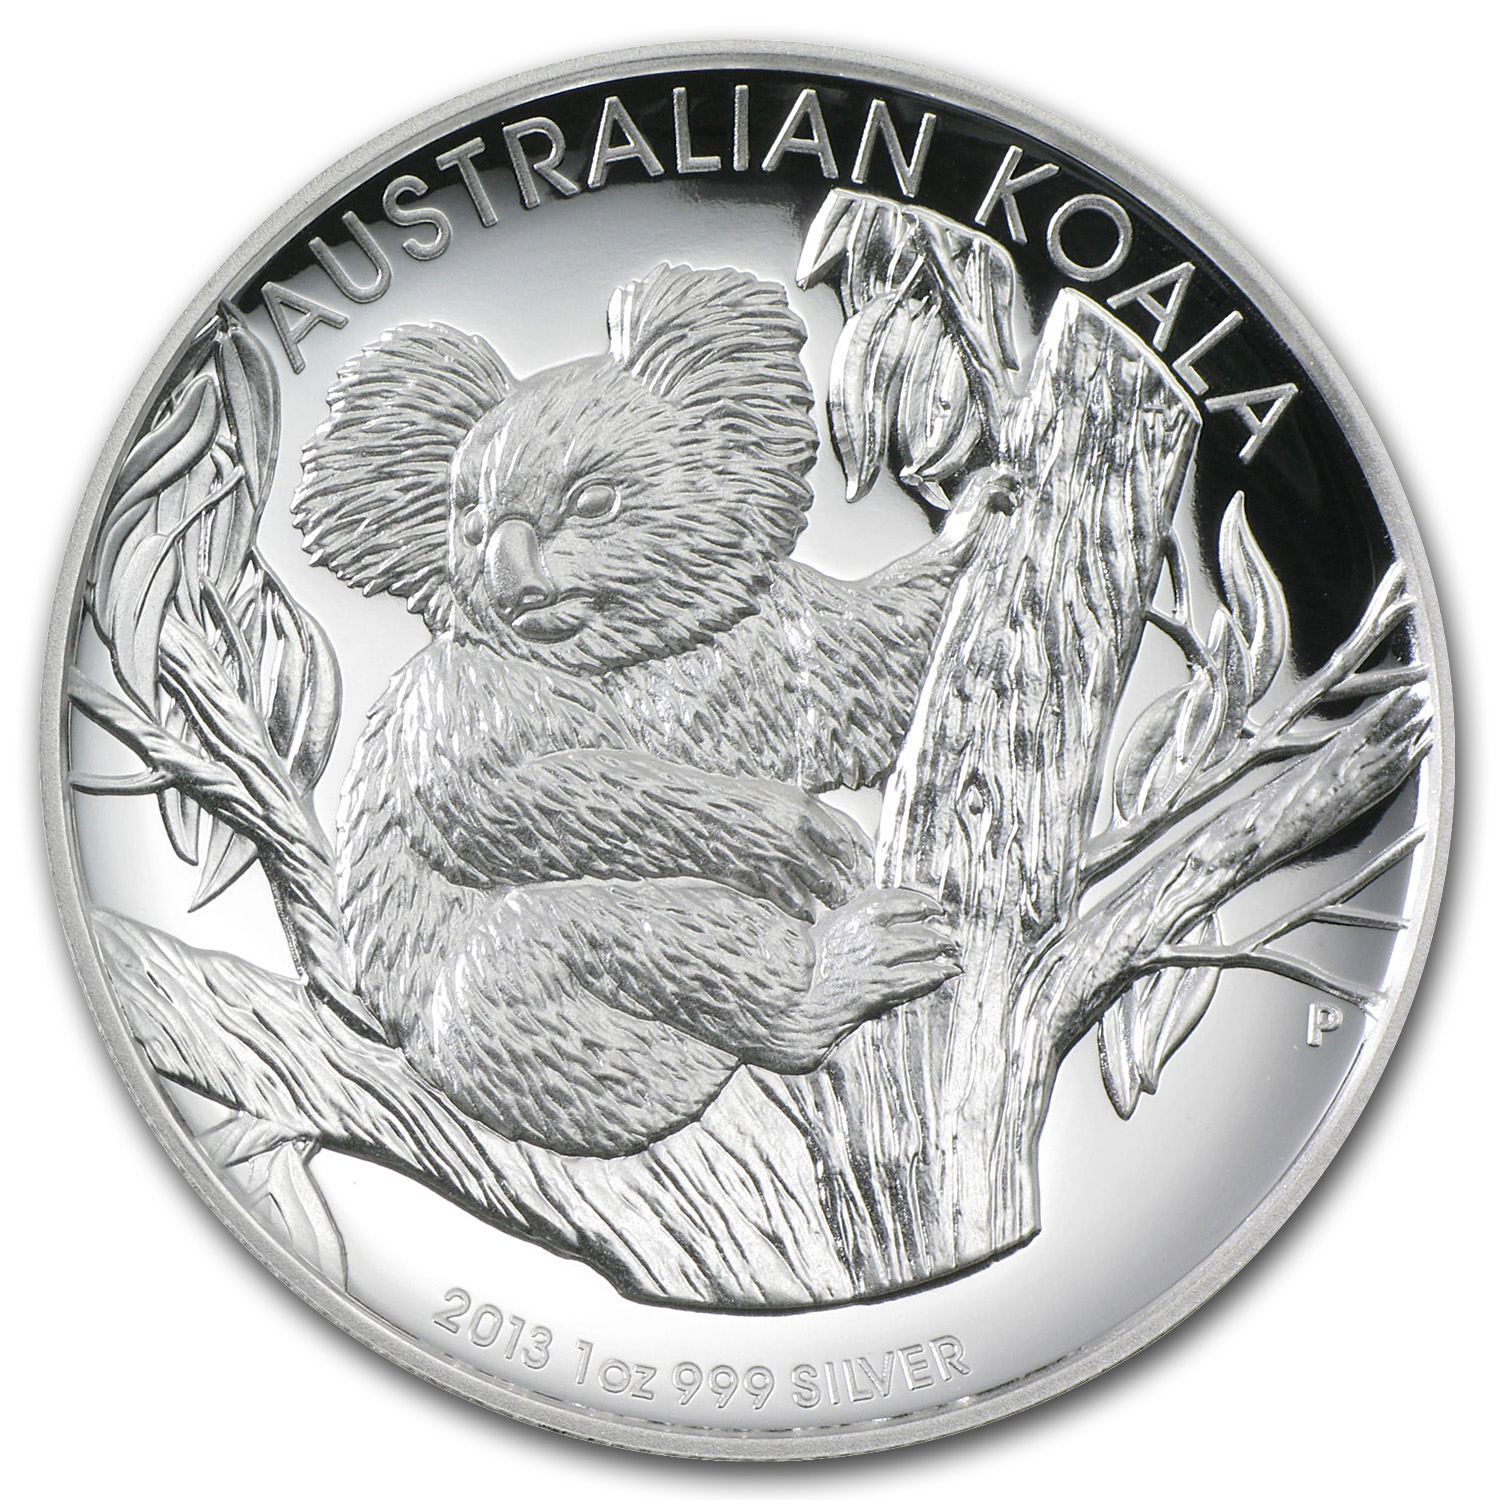 2013 1 oz Silver Australian Koala Prf (High Relief, w/Box & COA)